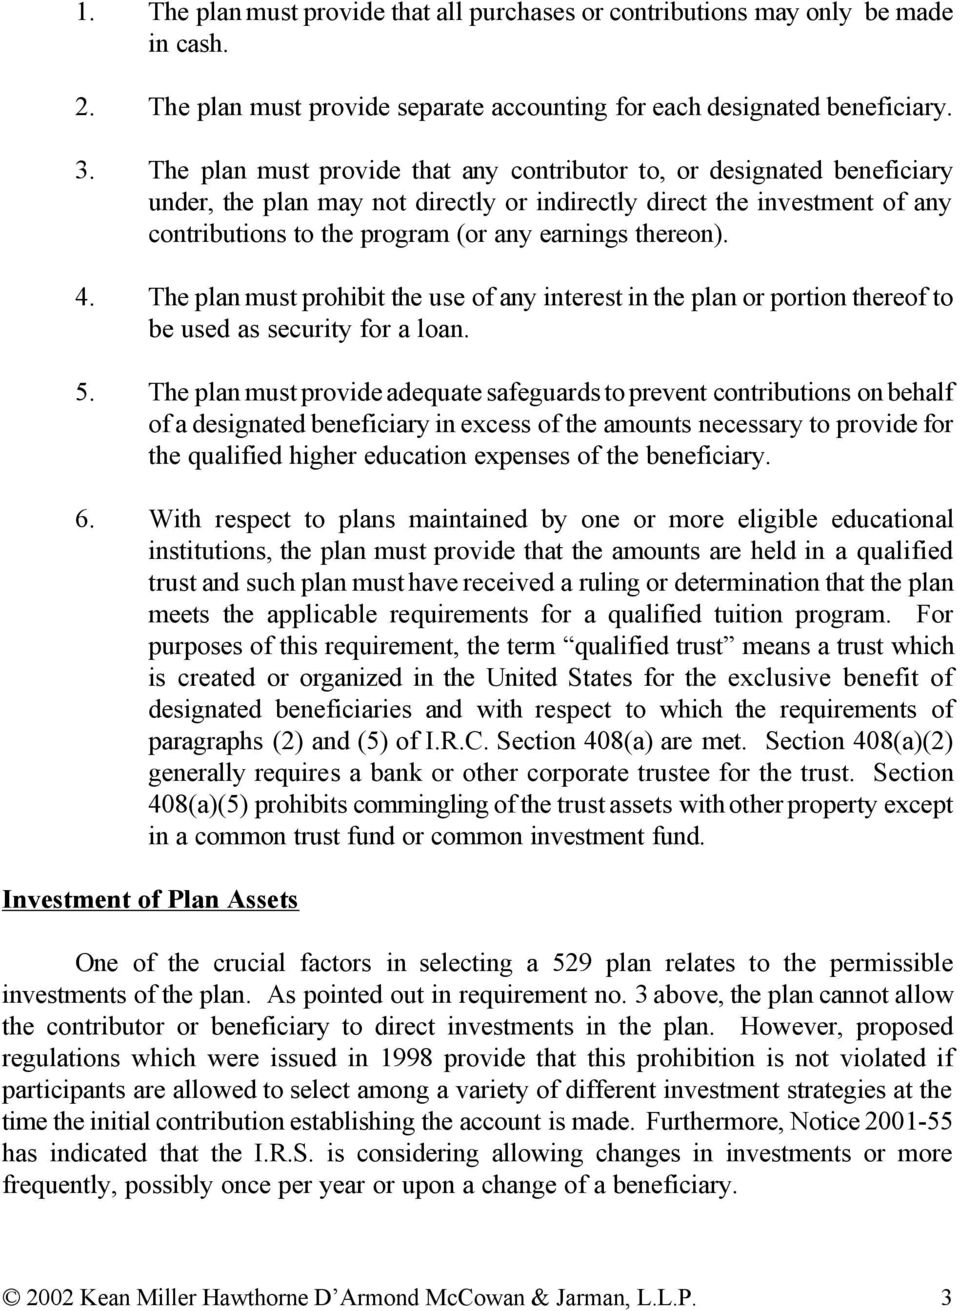 thereon). 4. The plan must prohibit the use of any interest in the plan or portion thereof to be used as security for a loan. 5.